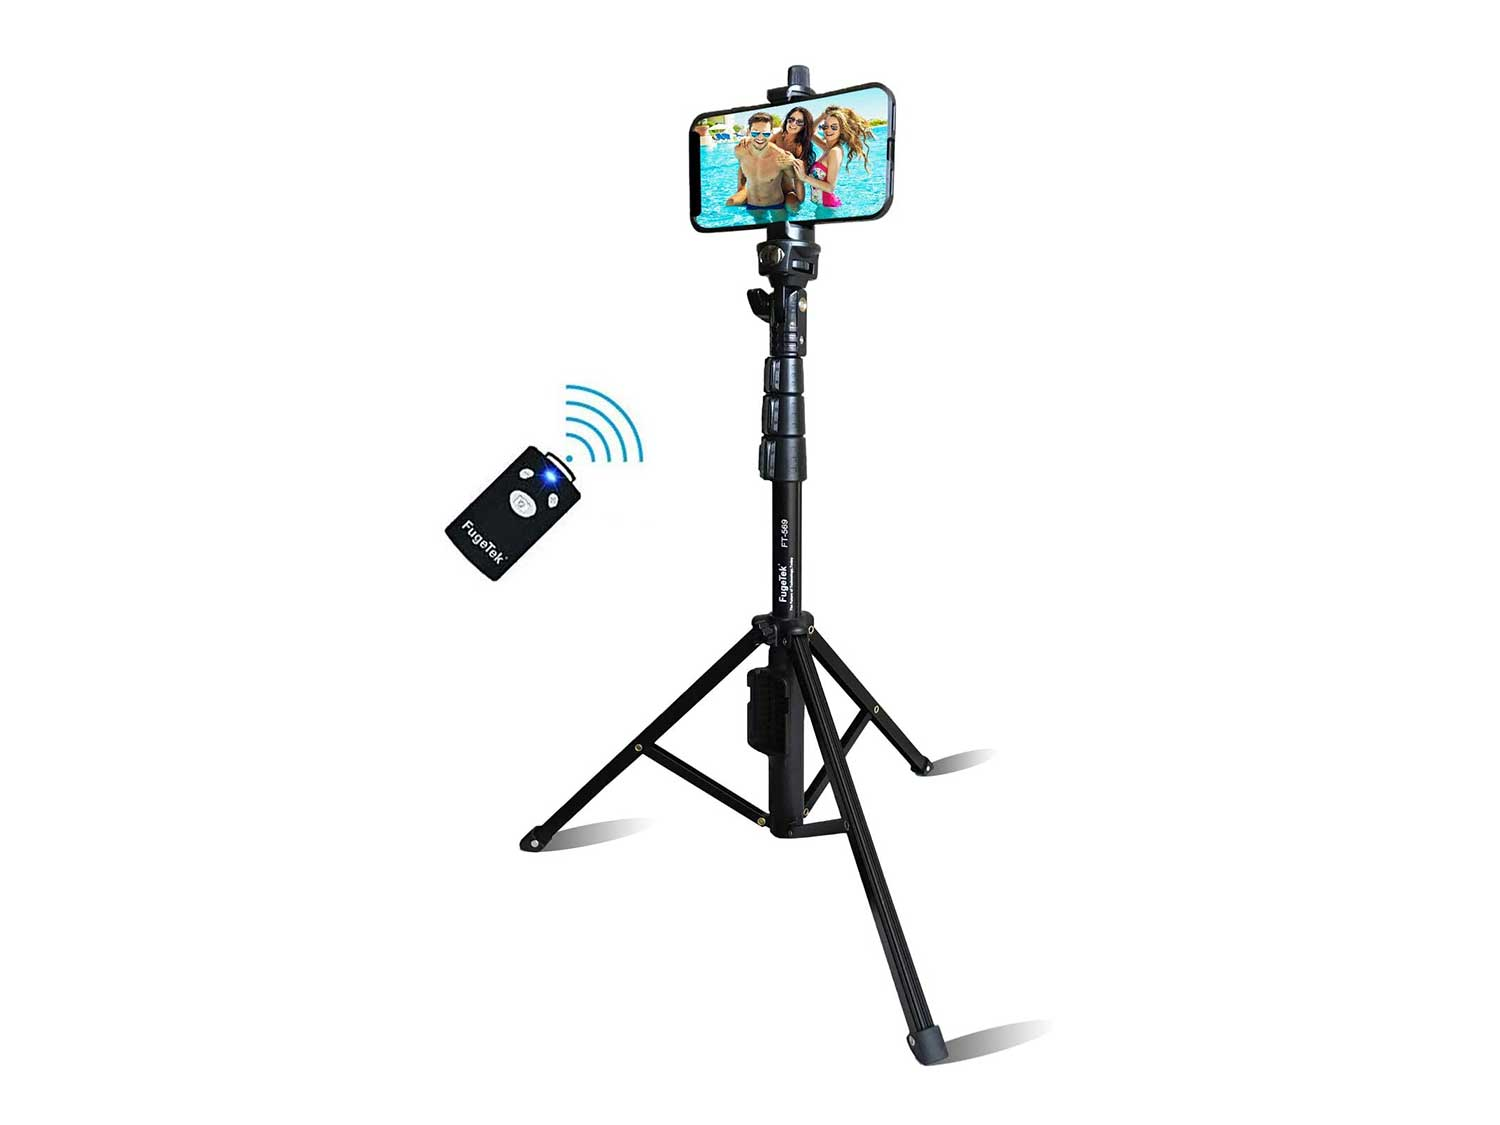 Selfie Stick & Tripod Fugetek, Integrated, Portable All-in-One Professional, Heavy Duty Aluminum, Bluetooth Remote Compatible with Apple & Android Devices, Non Skid Tripod Feet, Extends to 51